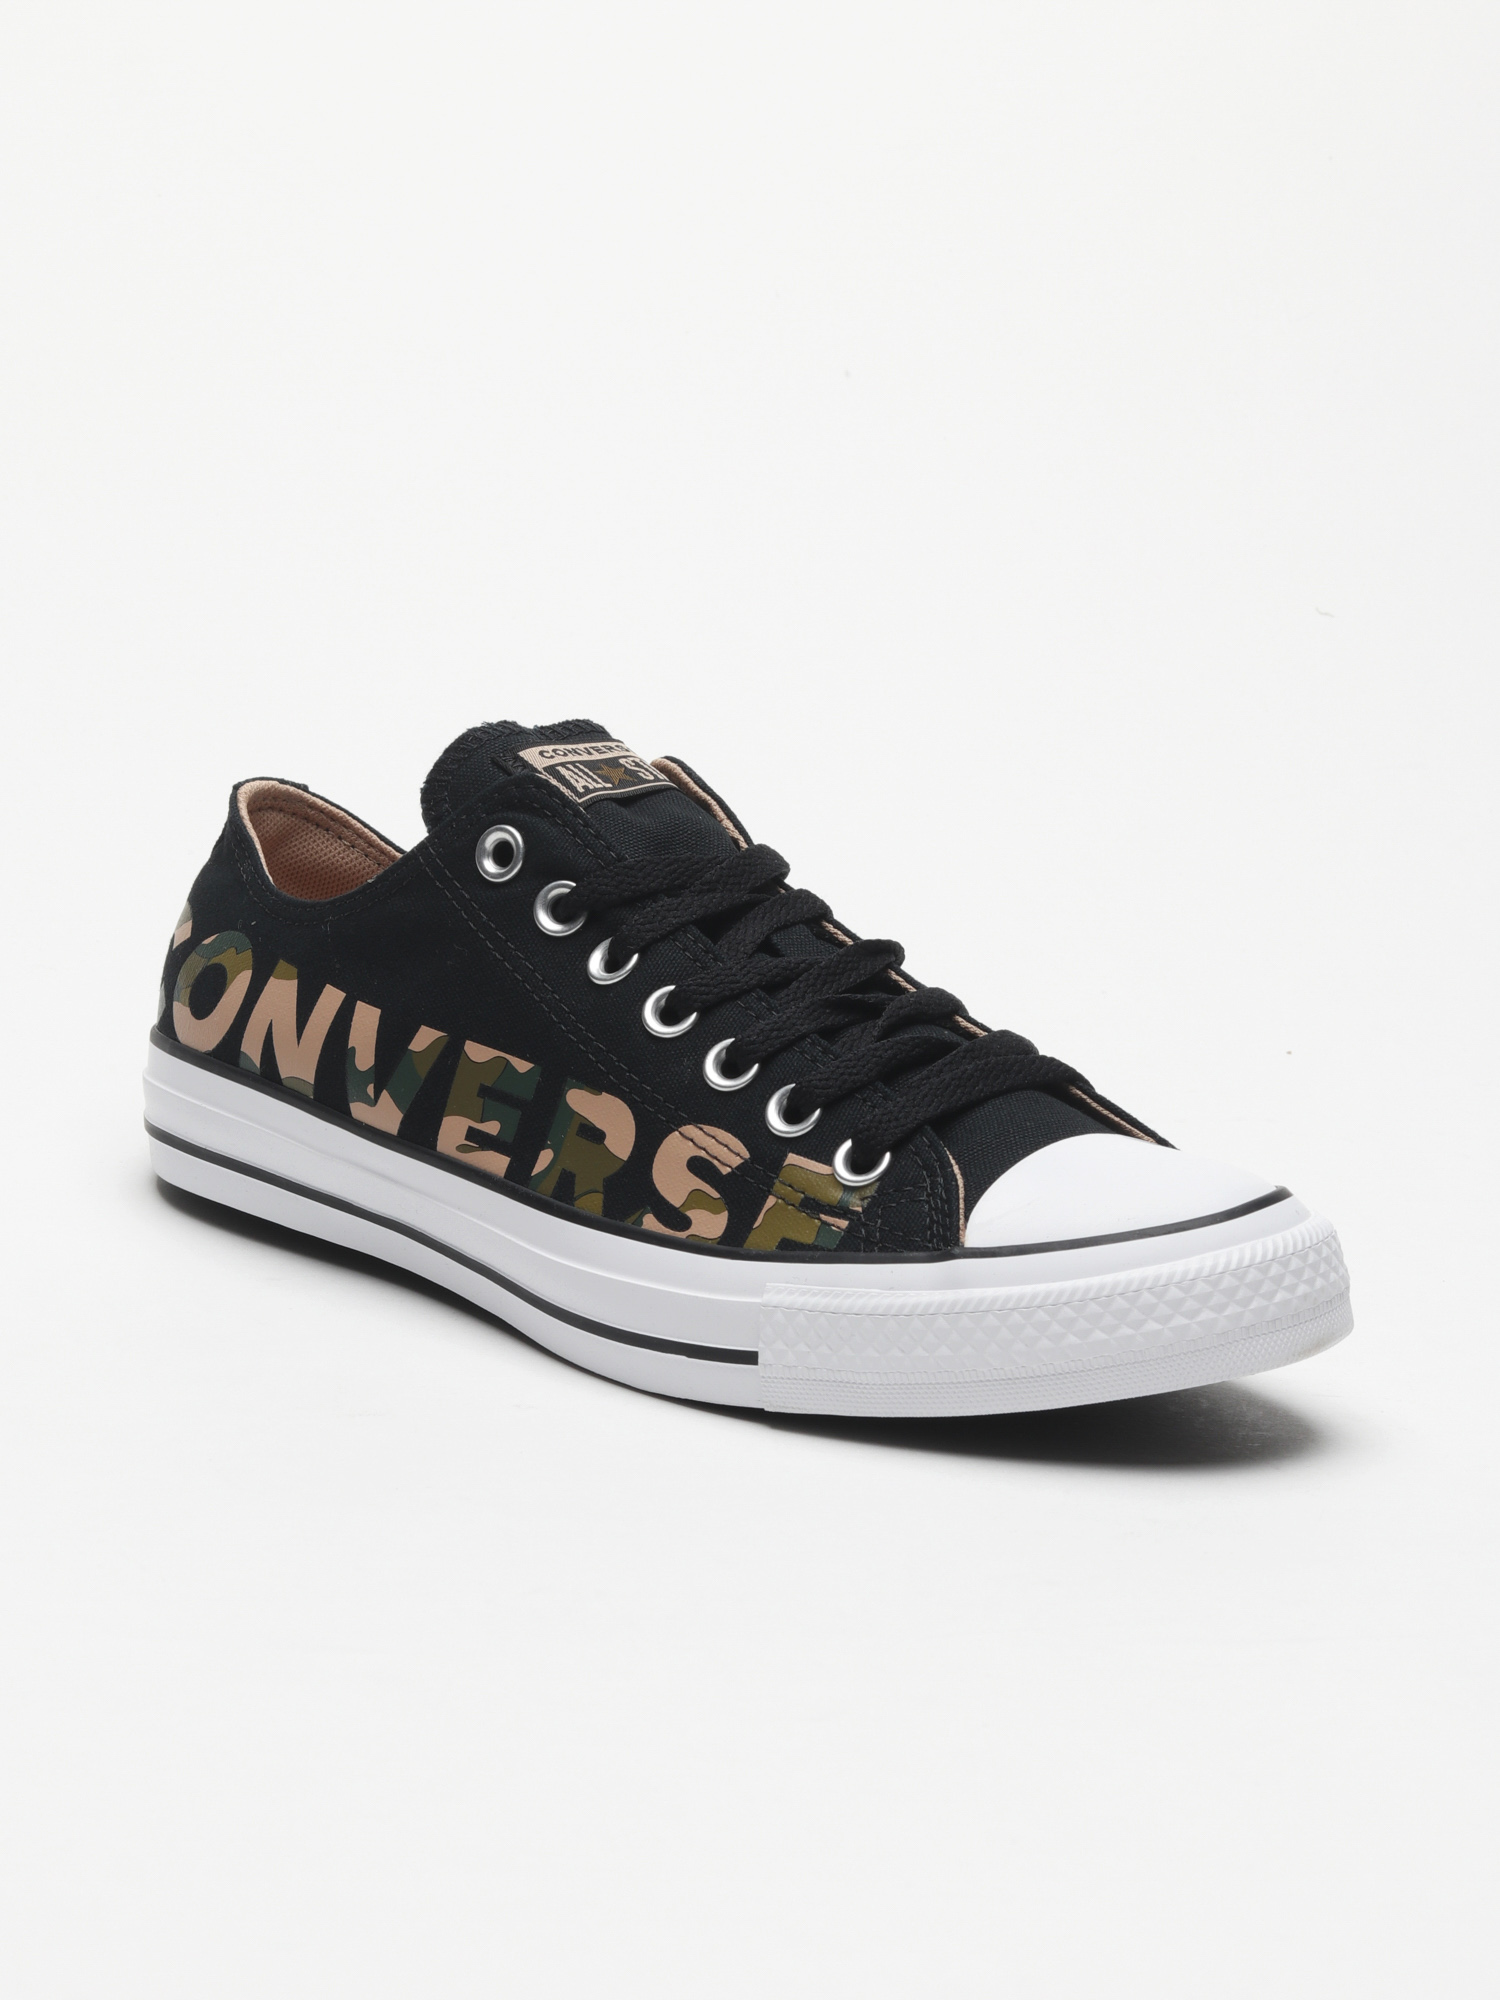 Boty Converse Chuck Taylor All Star Canvas Wordmark (3)